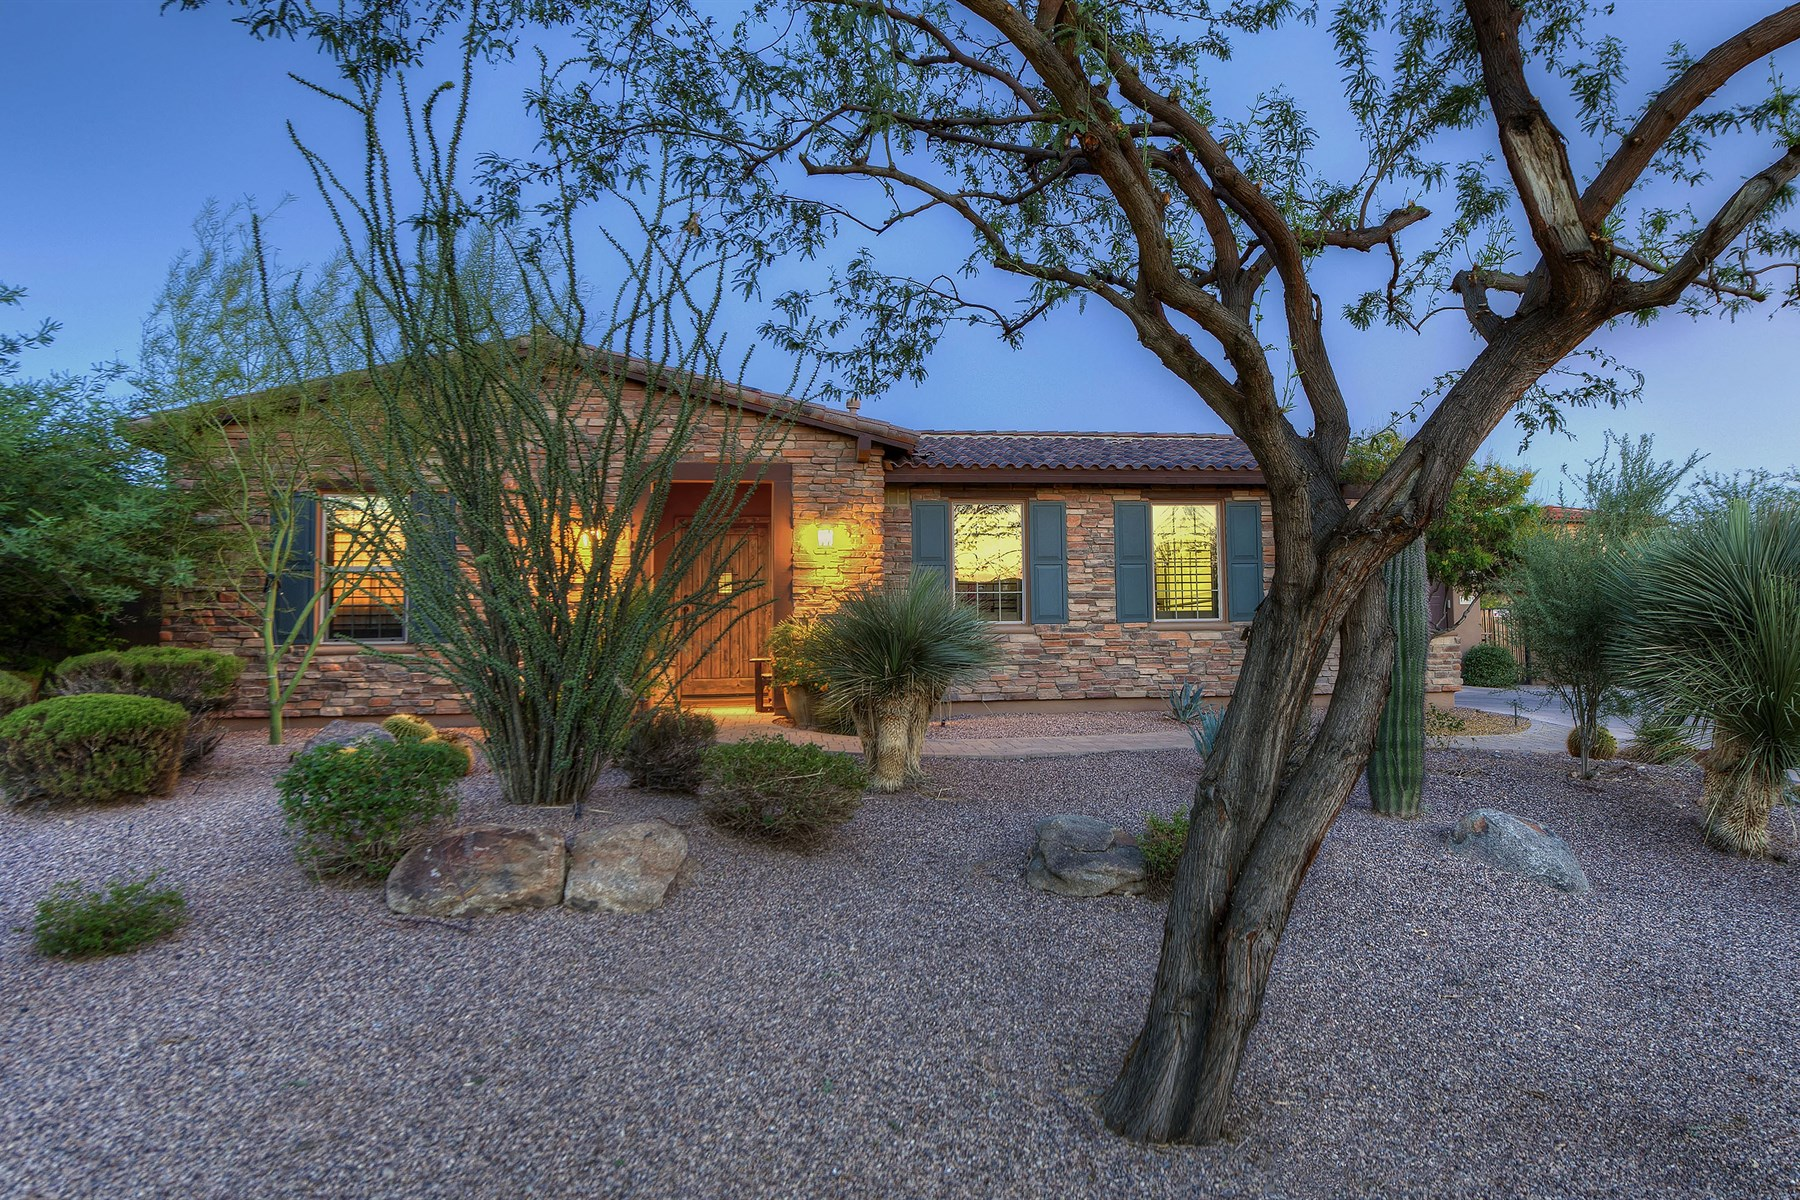 Single Family Home for Sale at Tastefully upgraded home is nestled on a Sera Brisa 17875 N 94th Way Scottsdale, Arizona 85255 United States